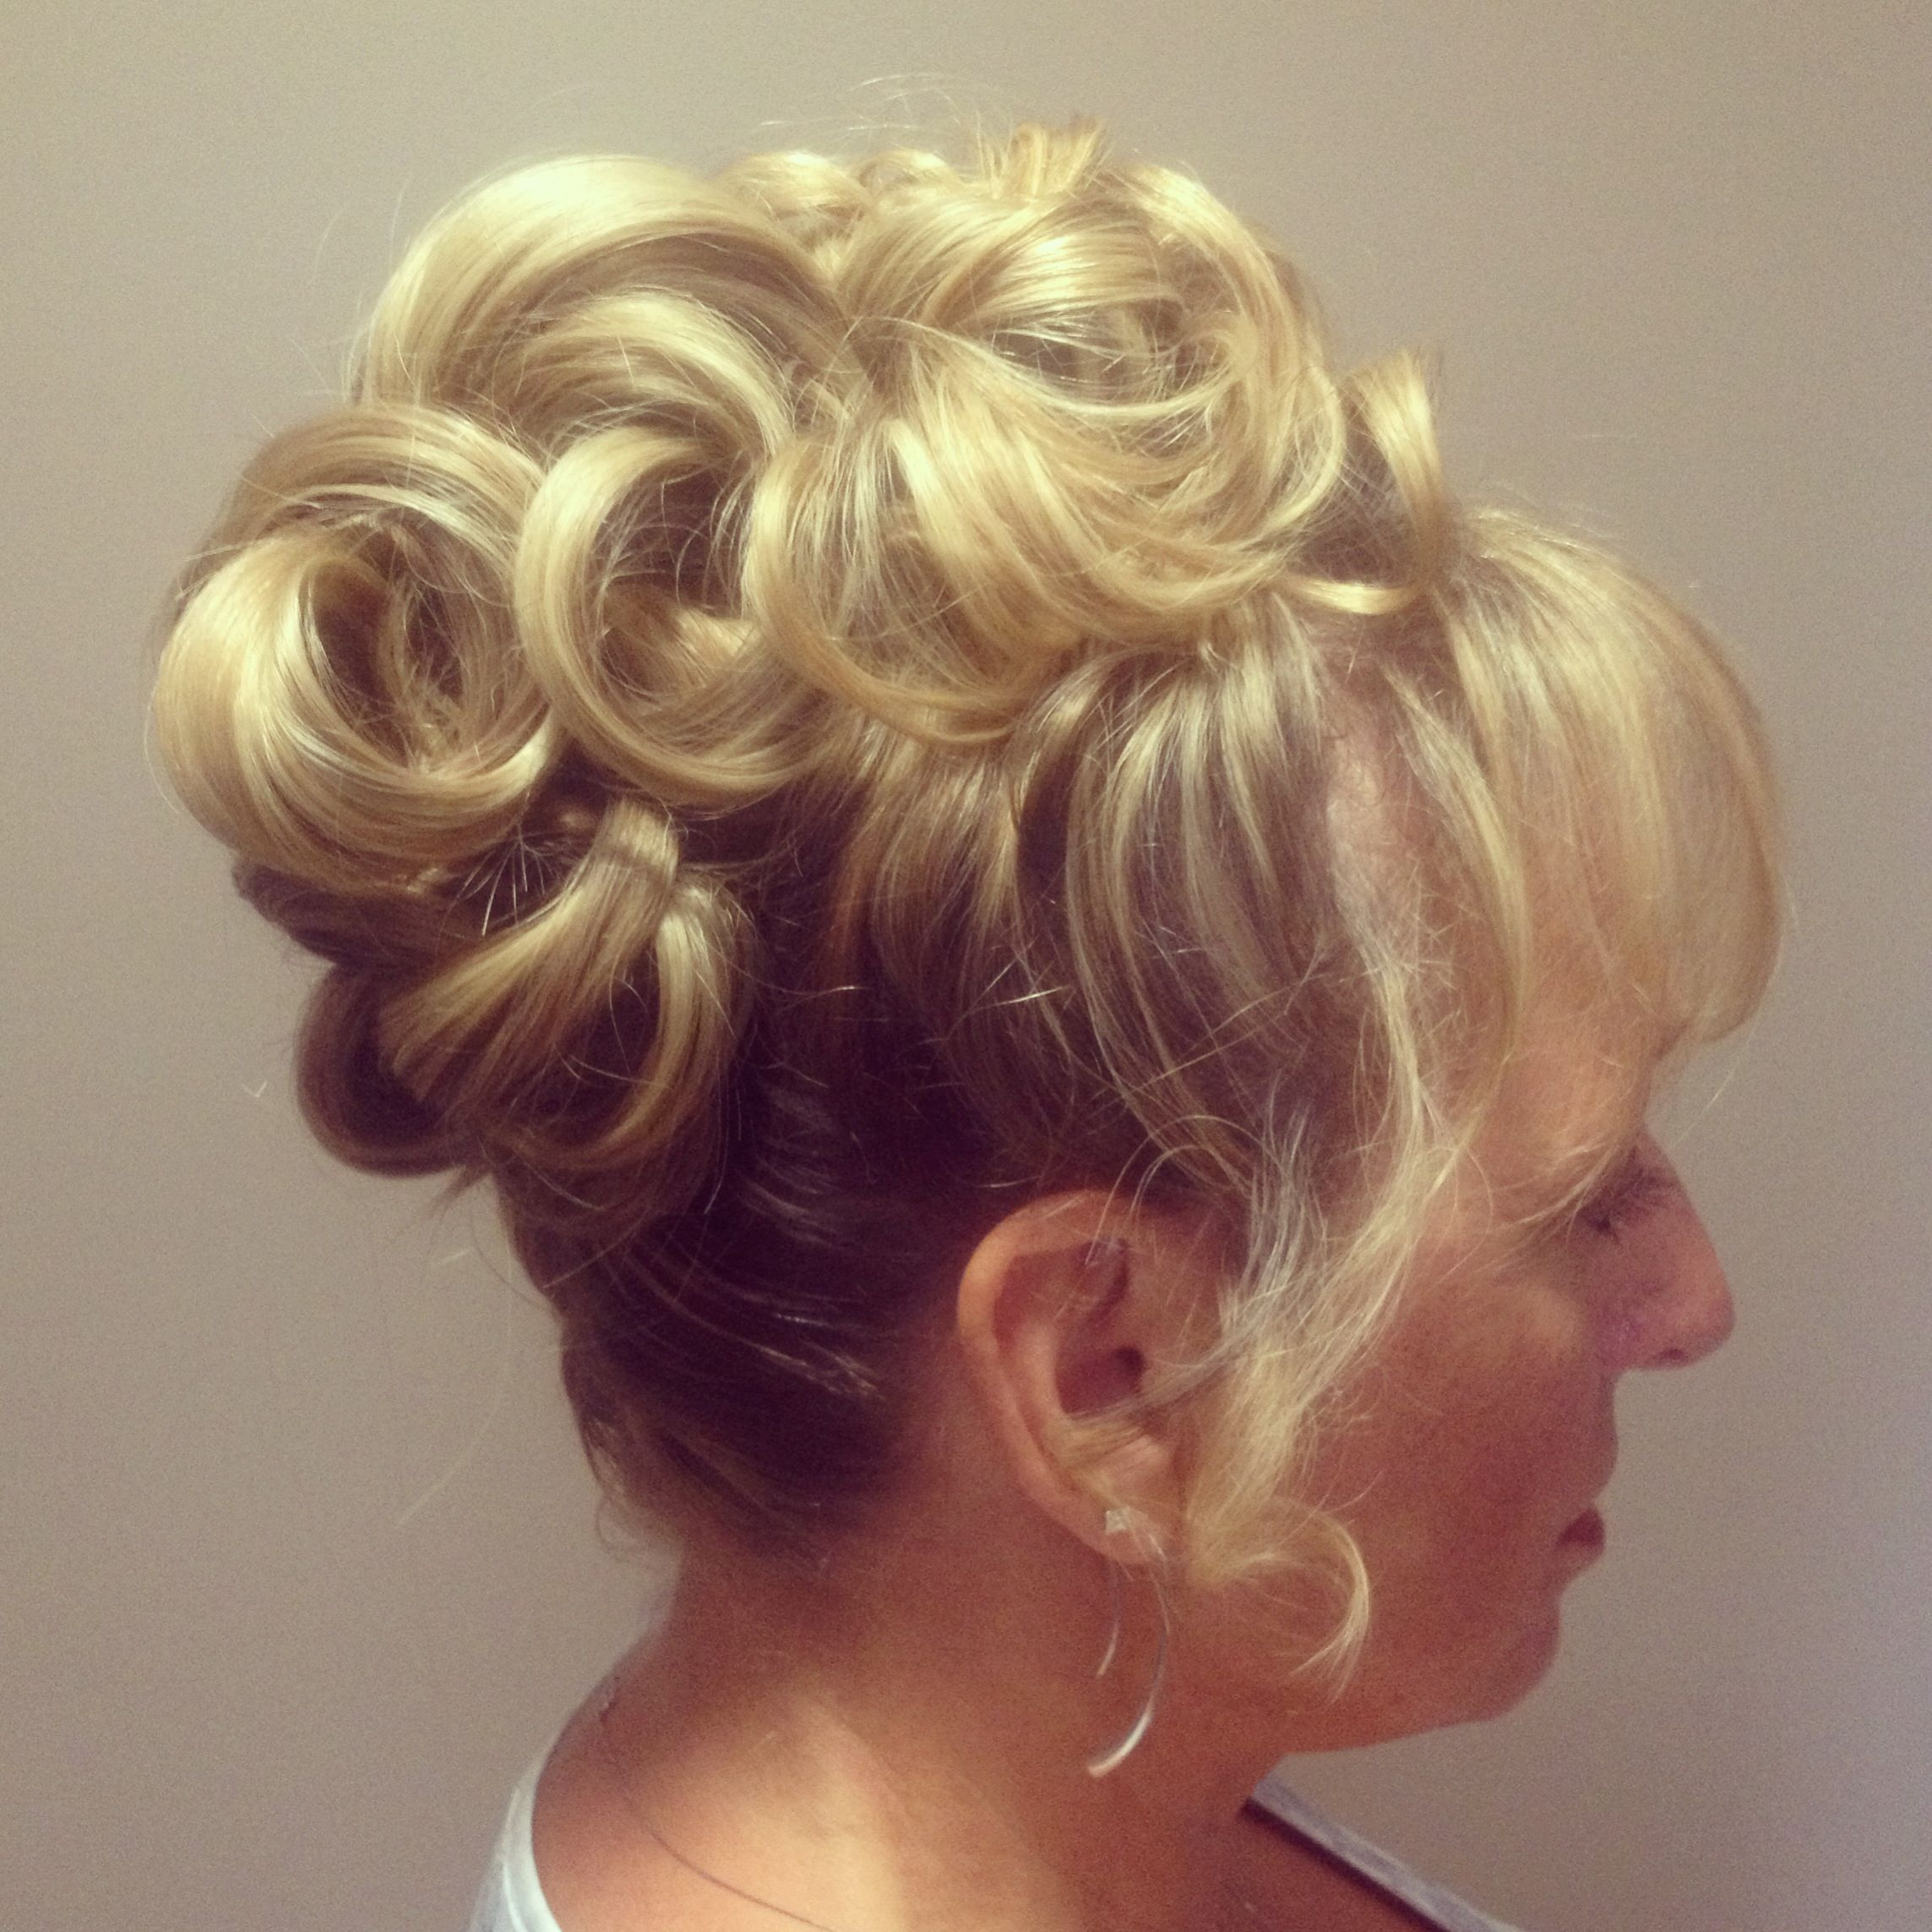 Mom Wedding Hairstyles: Mother Of The Bride Hair, High Updo